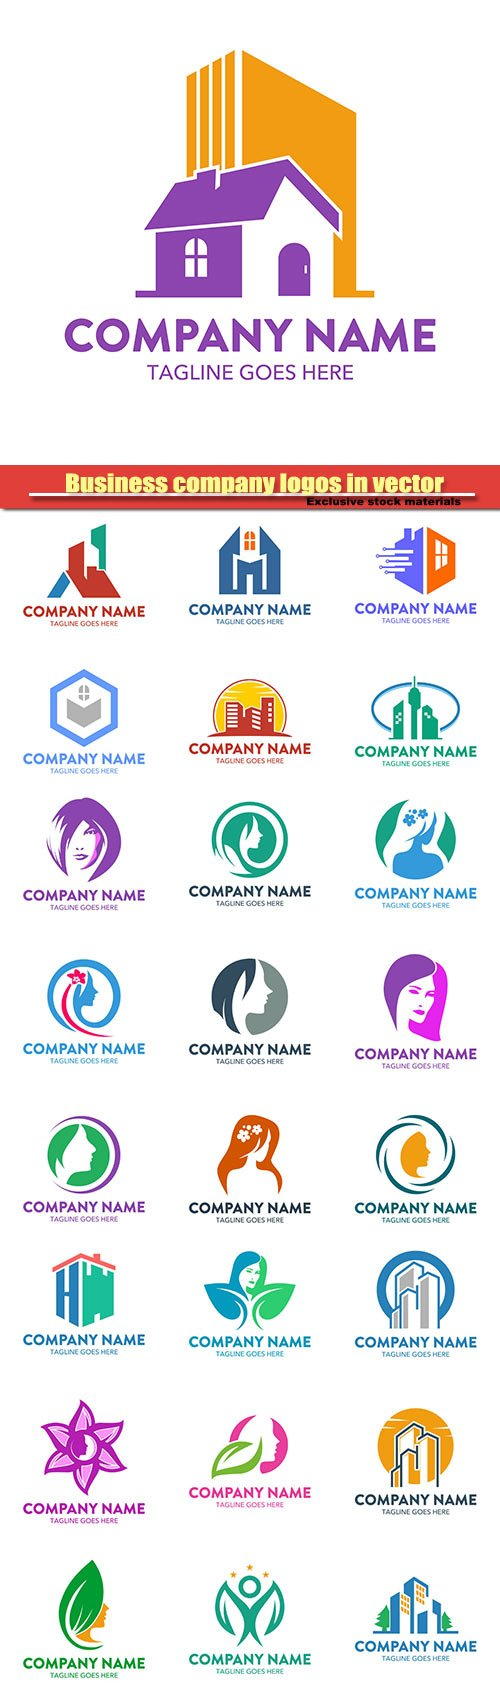 Business company logos in vector